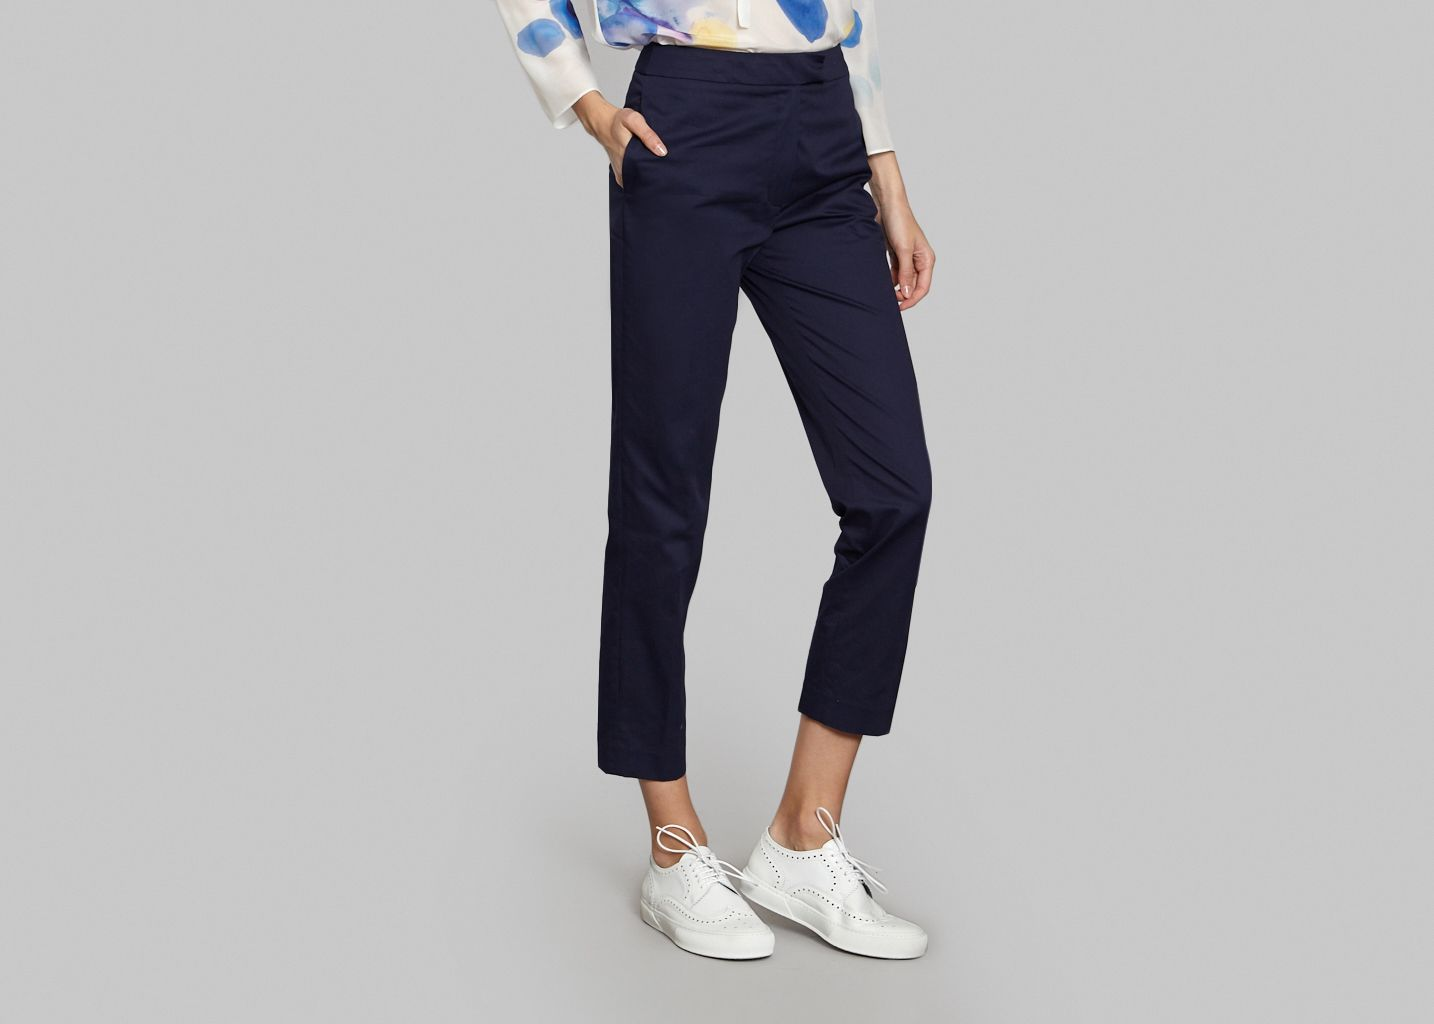 Pantalon Droit - Cacharel